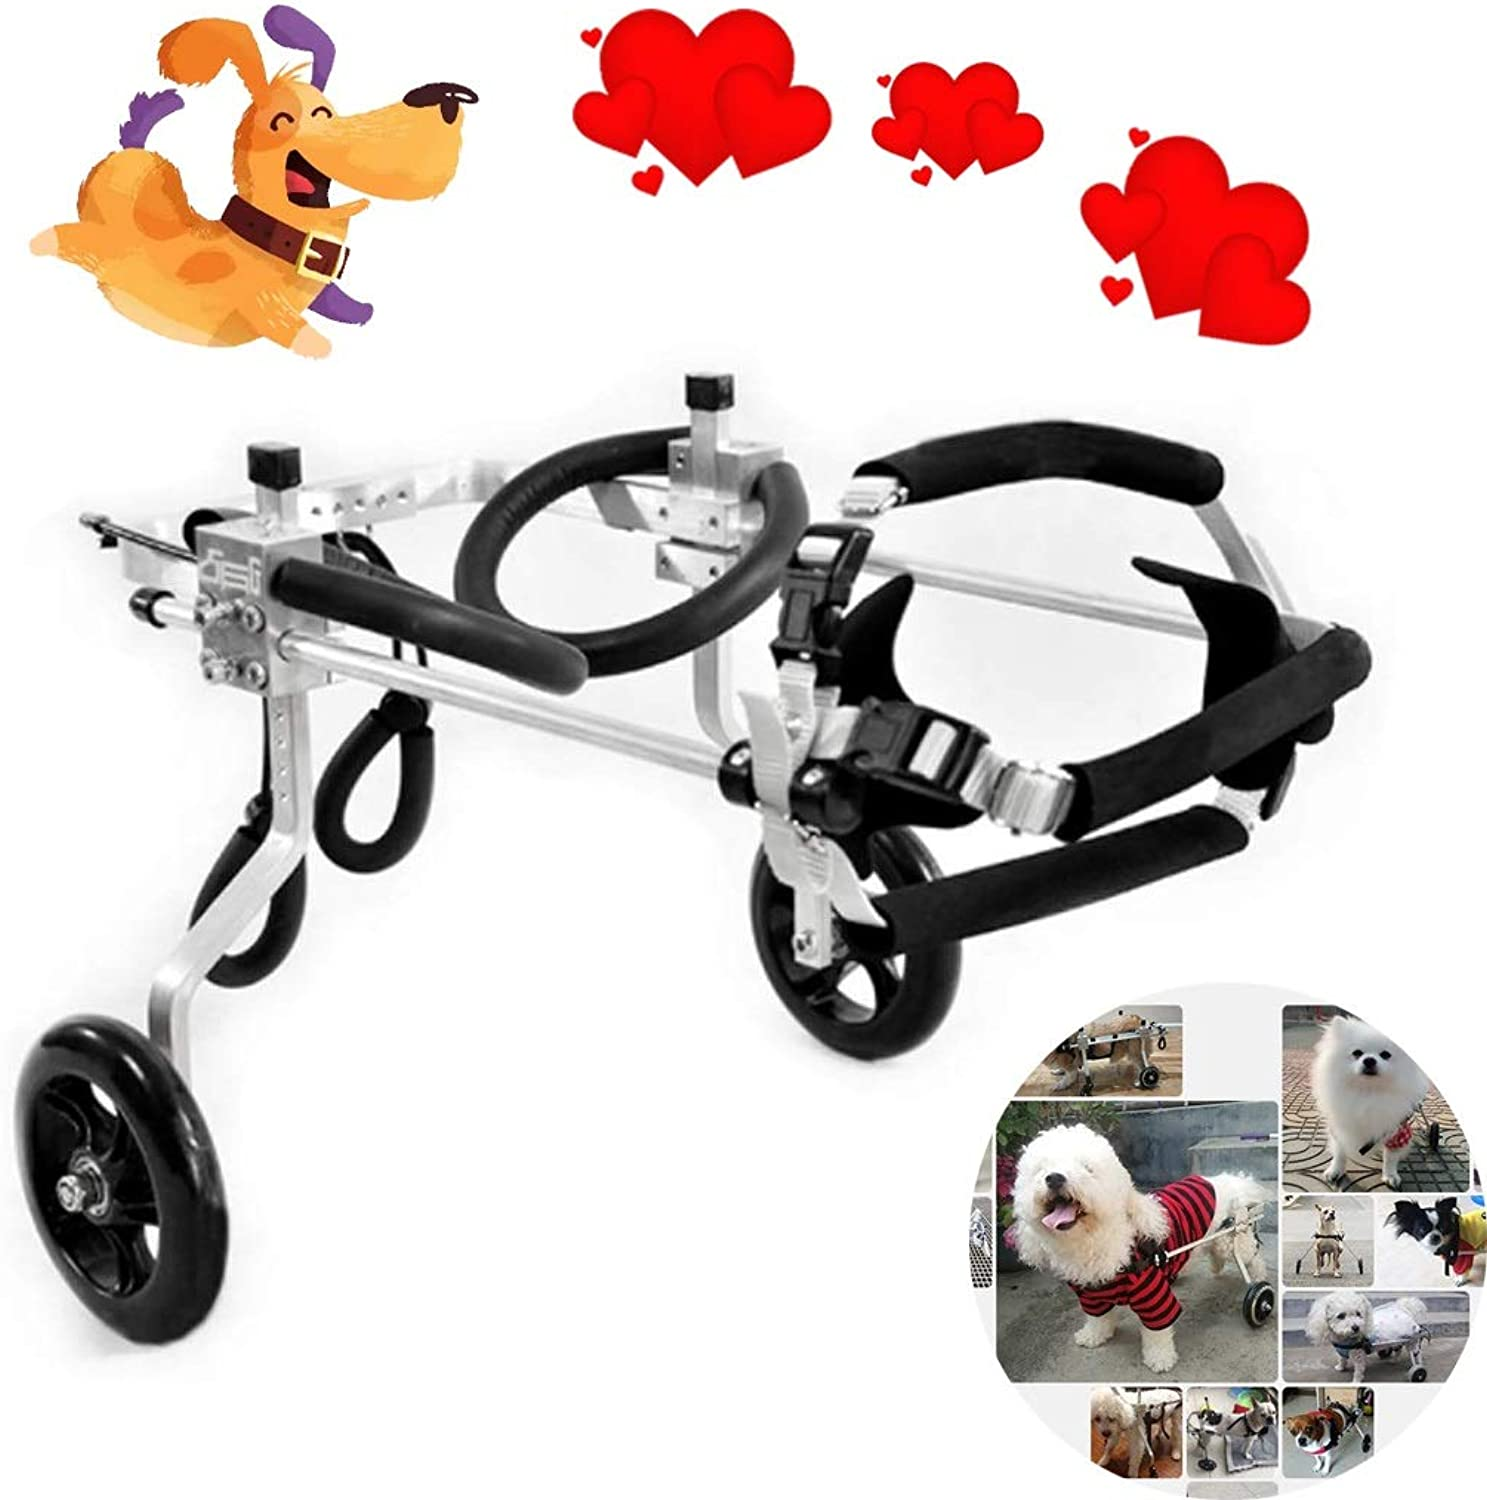 Dog wheelchair Wheels Dog Wheelchair  For most dogs 160 kg  Veterinarian Approved  Wheelchair for Back Legs  For Pet Cat Dog Wheelchair Hind Leg Rehabilitation for Handicapped Dog, 2wheel Hind L